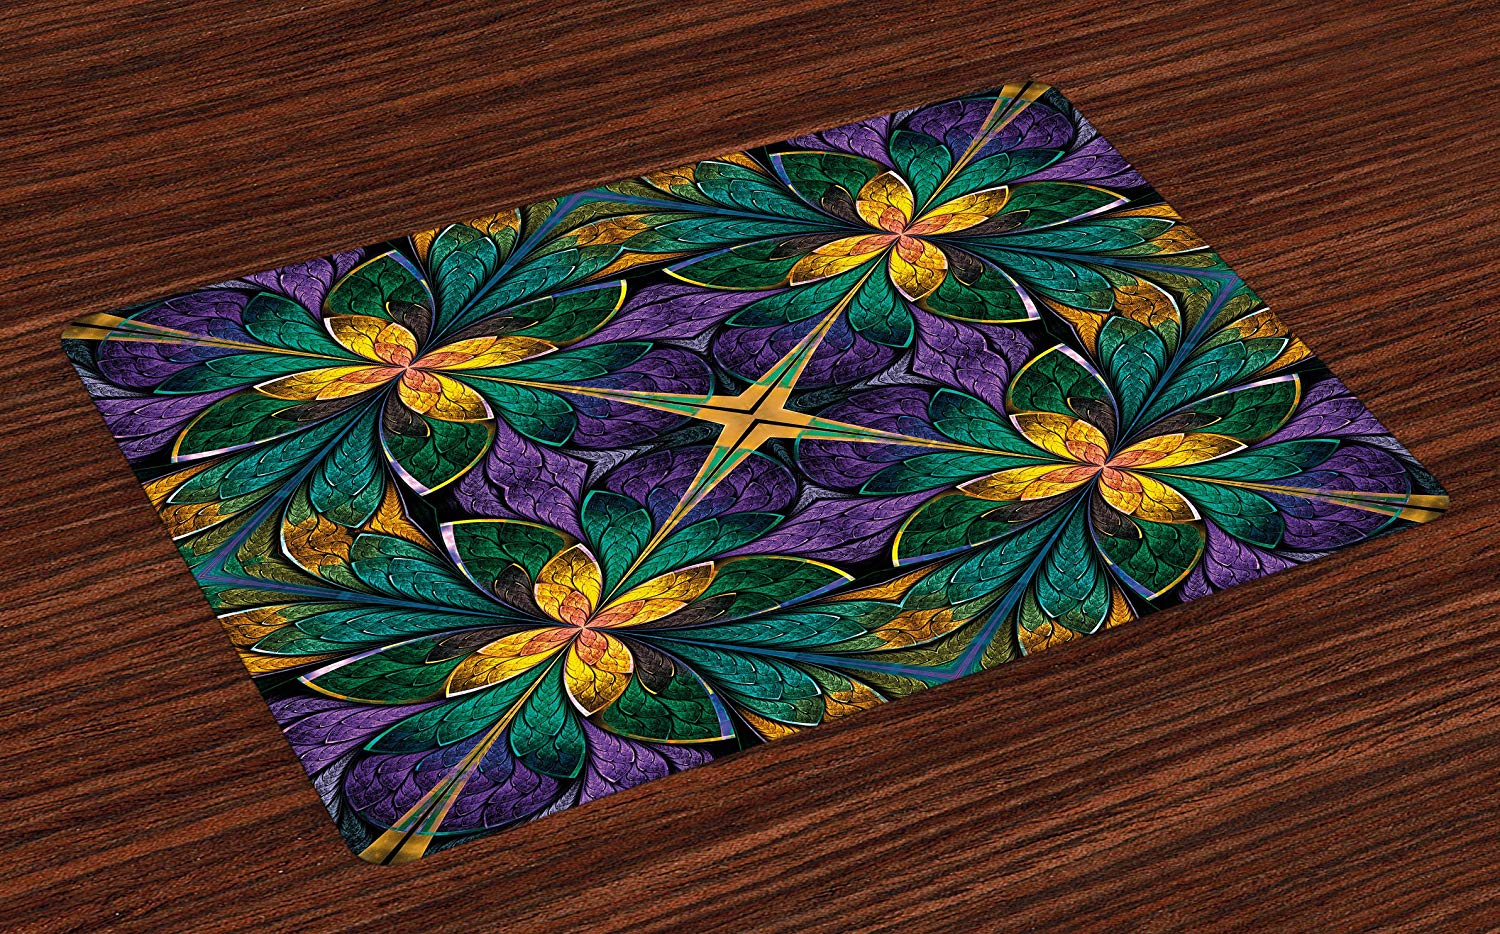 Ambesonne Fractal Place Mats Set of 4, Antique Ornate Symmetric Stained Glass Mosaic Window Style Floral Tile Pattern, Washable Fabric Placemats for Dining Room Kitchen Table Decor, Green Purple